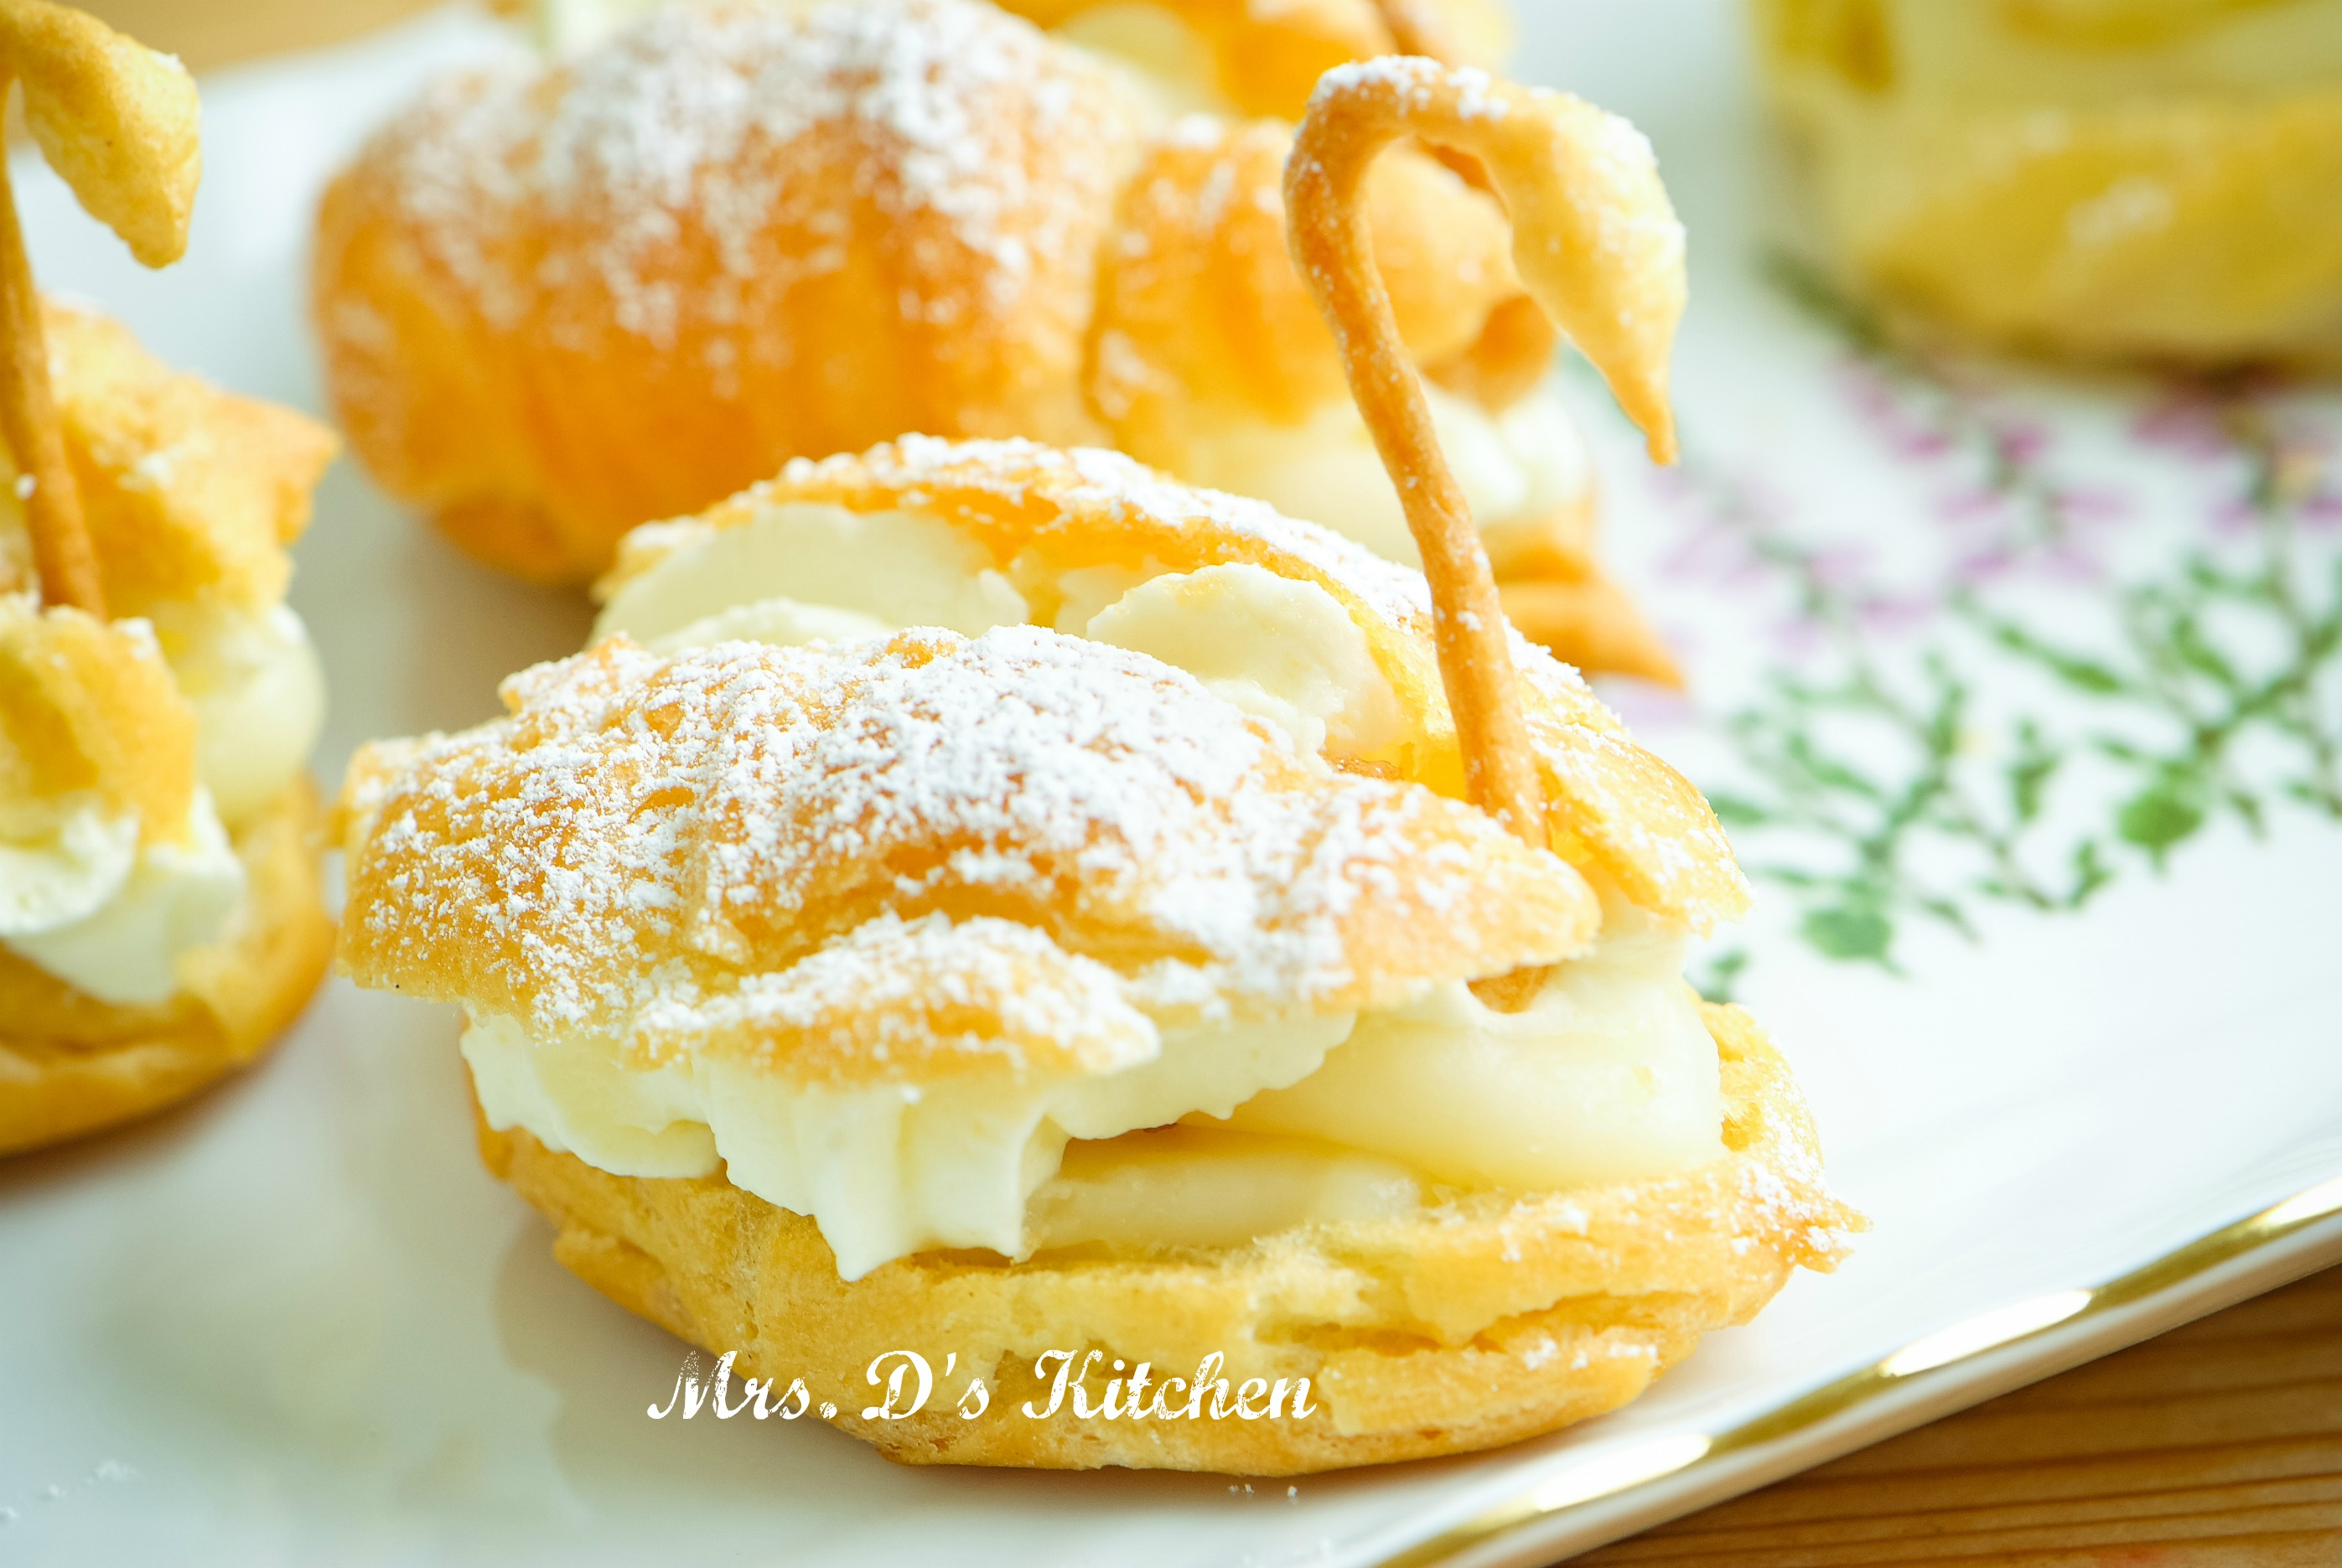 Kue Sus (Choux Pastry with Pastry Cream Filling) | Ridha's Kitchen